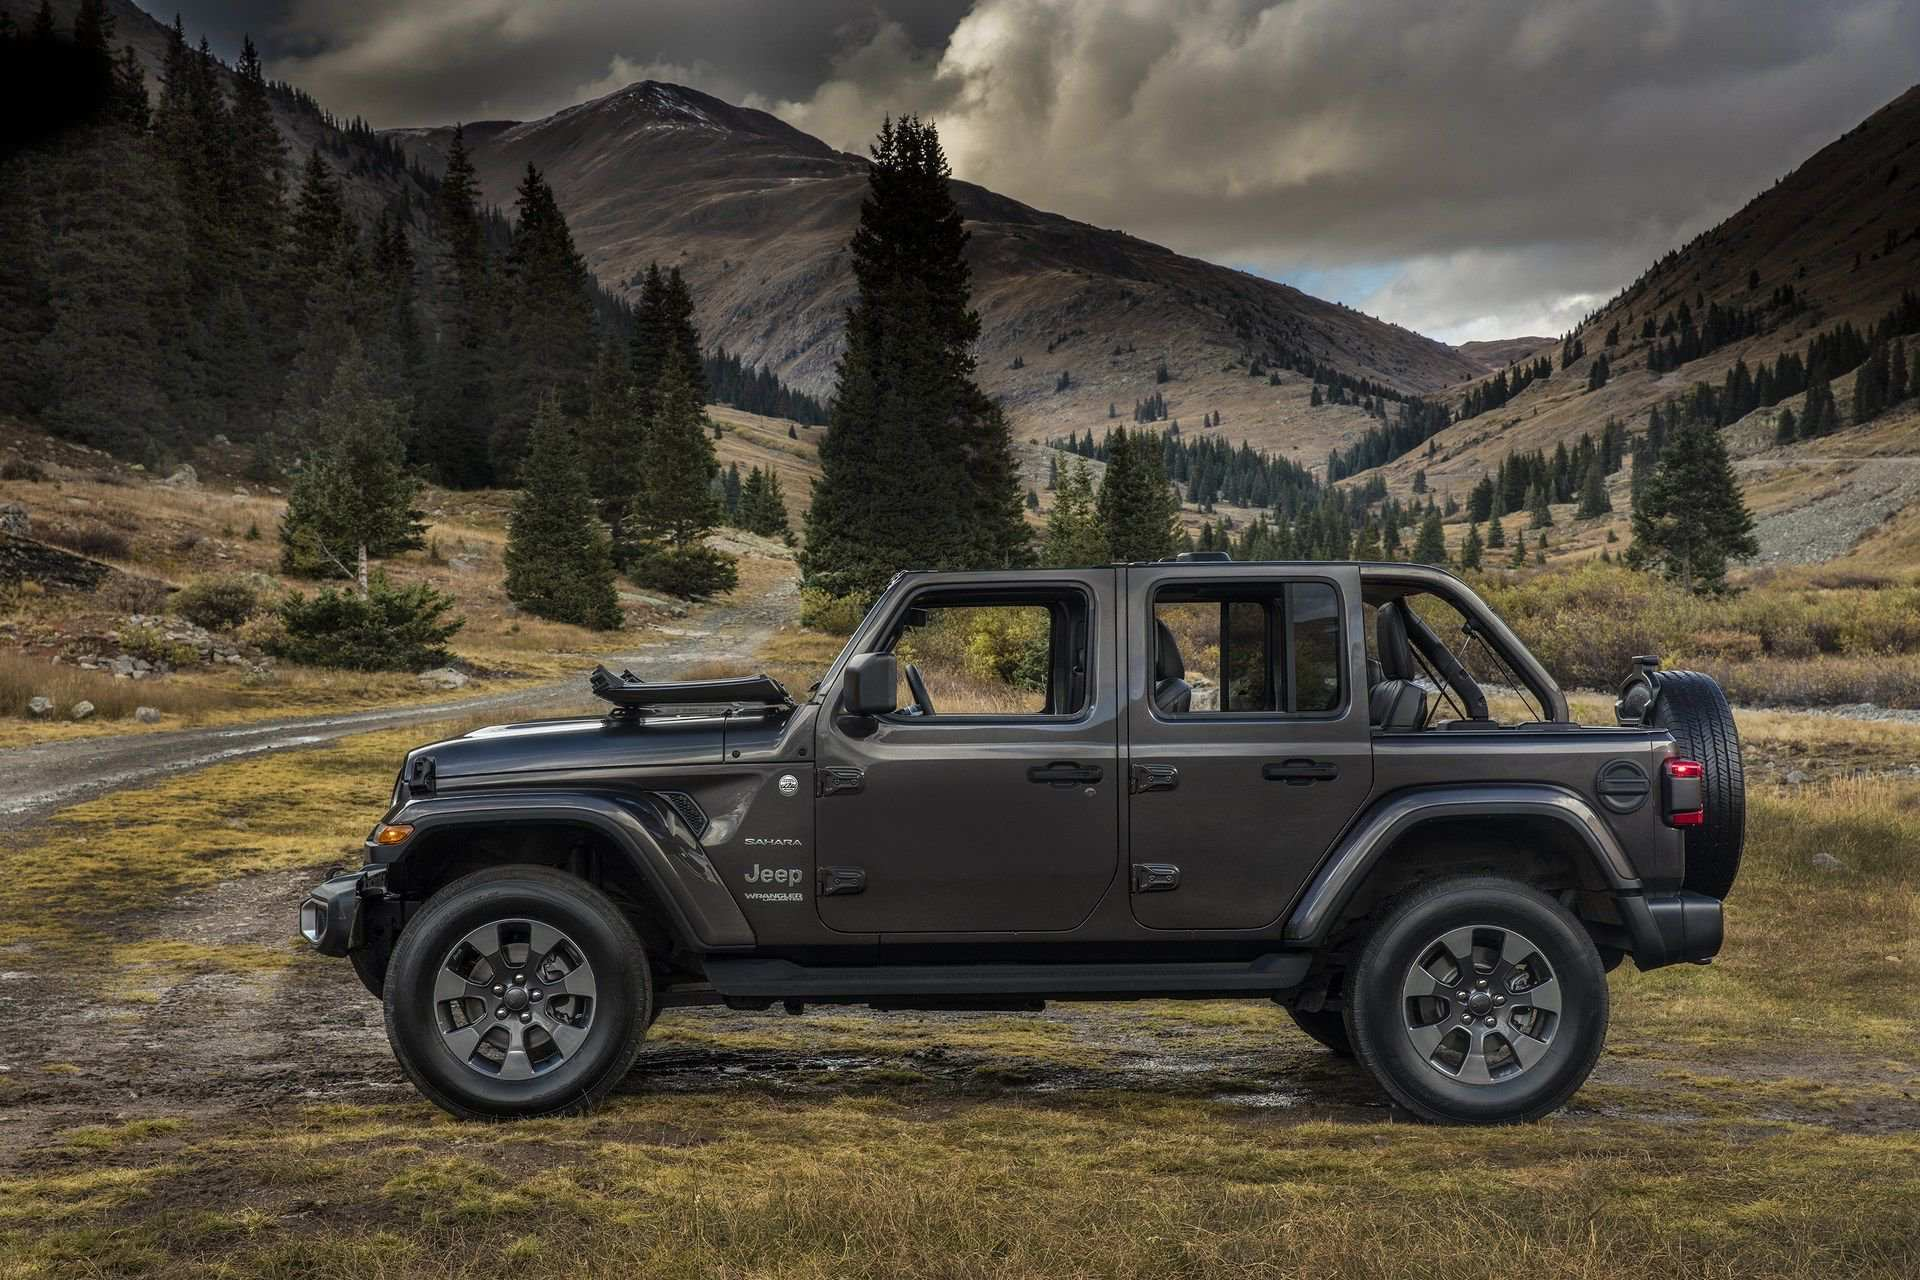 35 Concept of When Will 2020 Jeep Wrangler Be Available Photos for When Will 2020 Jeep Wrangler Be Available